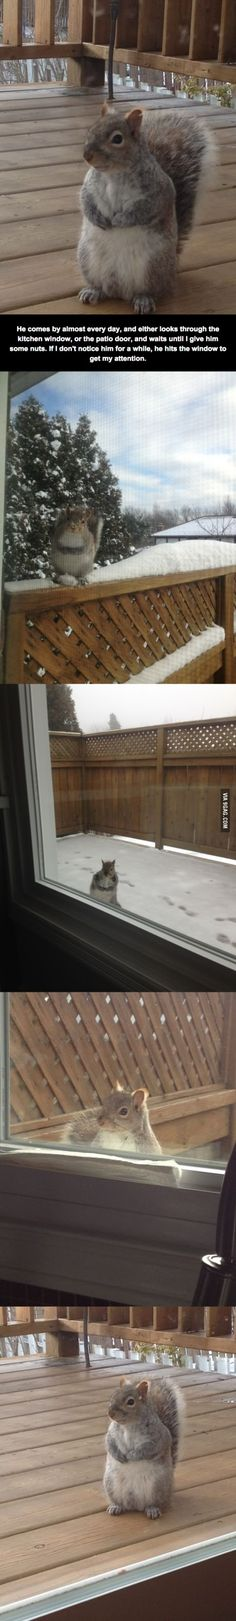 Squirrel who comes every day for nuts.